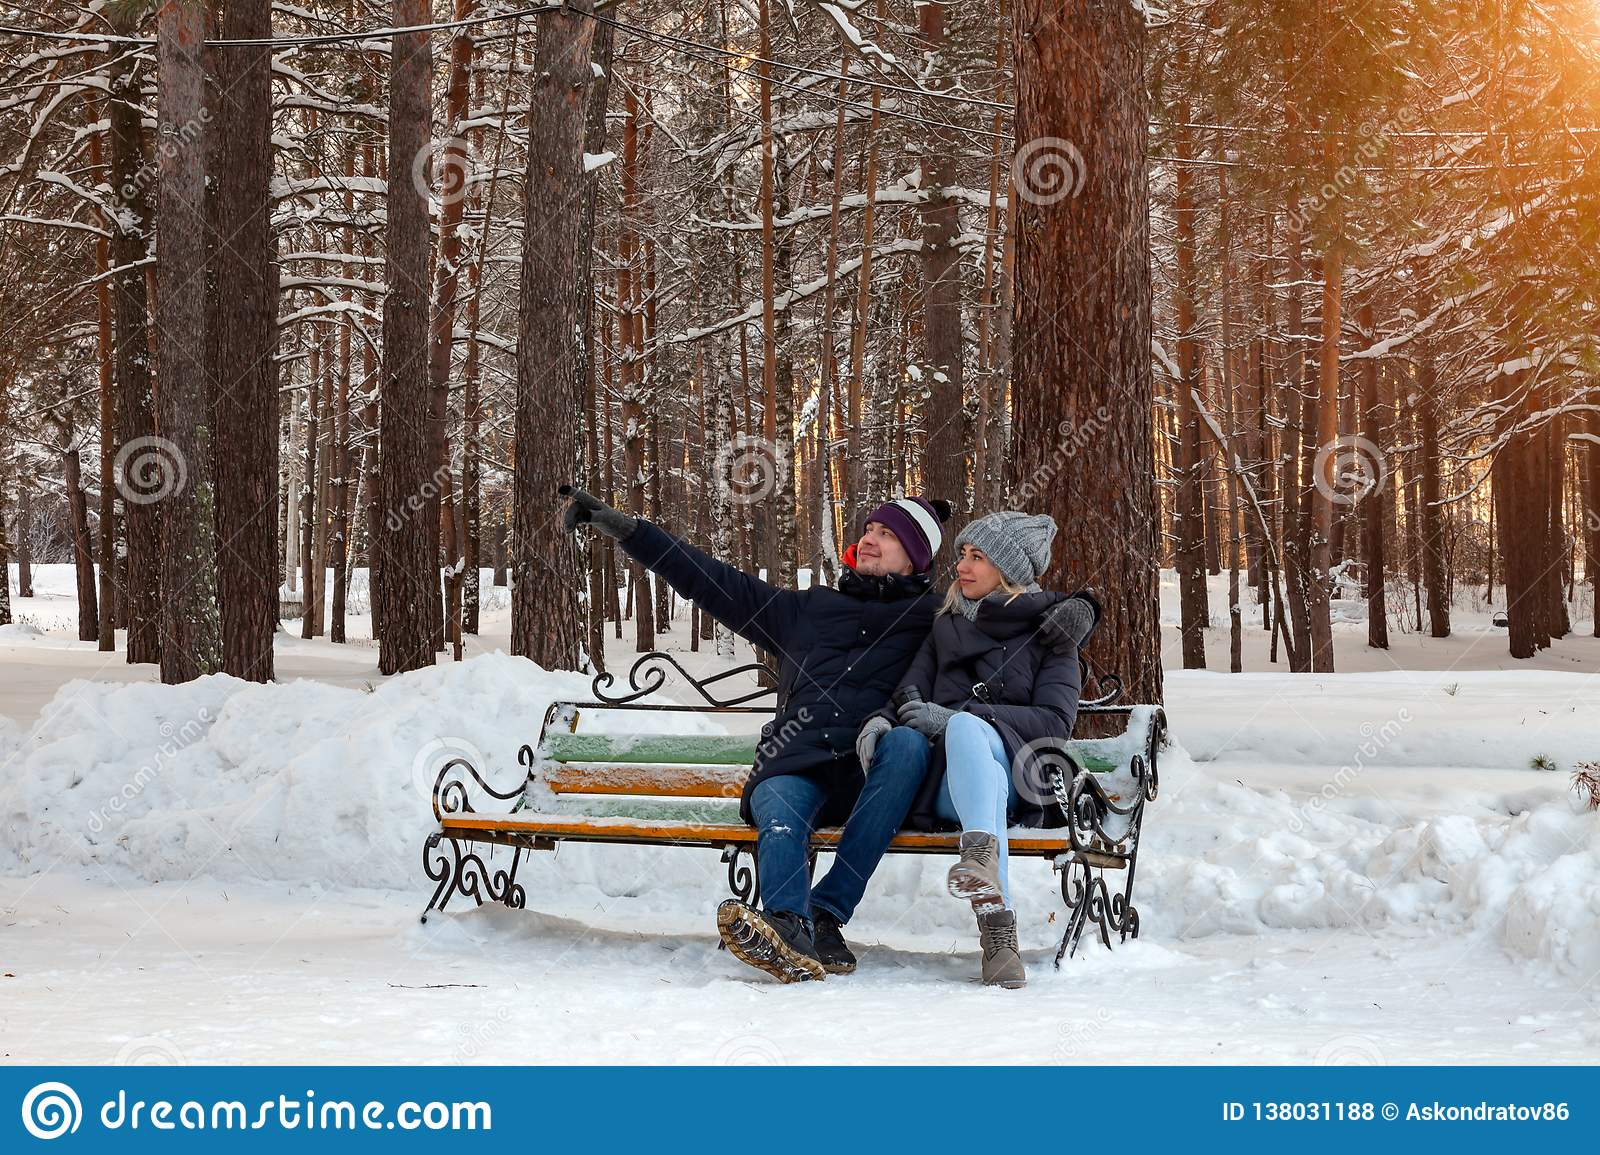 ee967e04 In The Winter Afternoon, A Loving Couple In Jackets And Hats Are ...